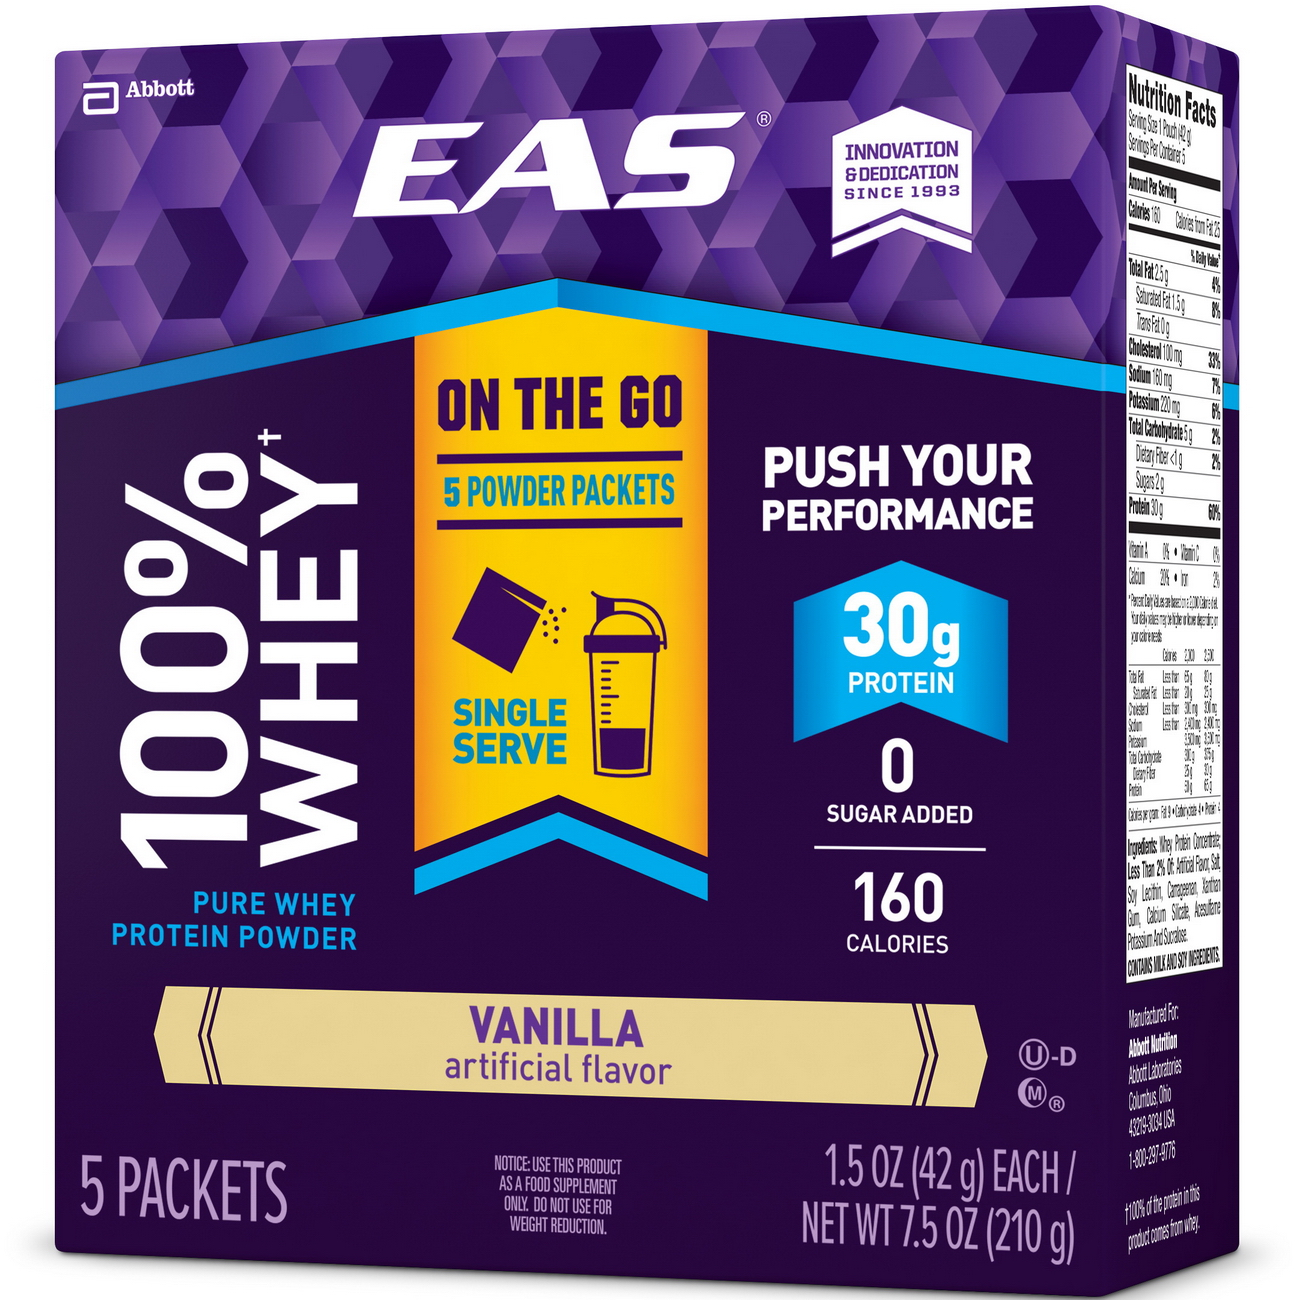 EAS 100% Pure Whey Protein Shake Powder Packets, 30 grams of protein, Vanilla, 1.5 oz (